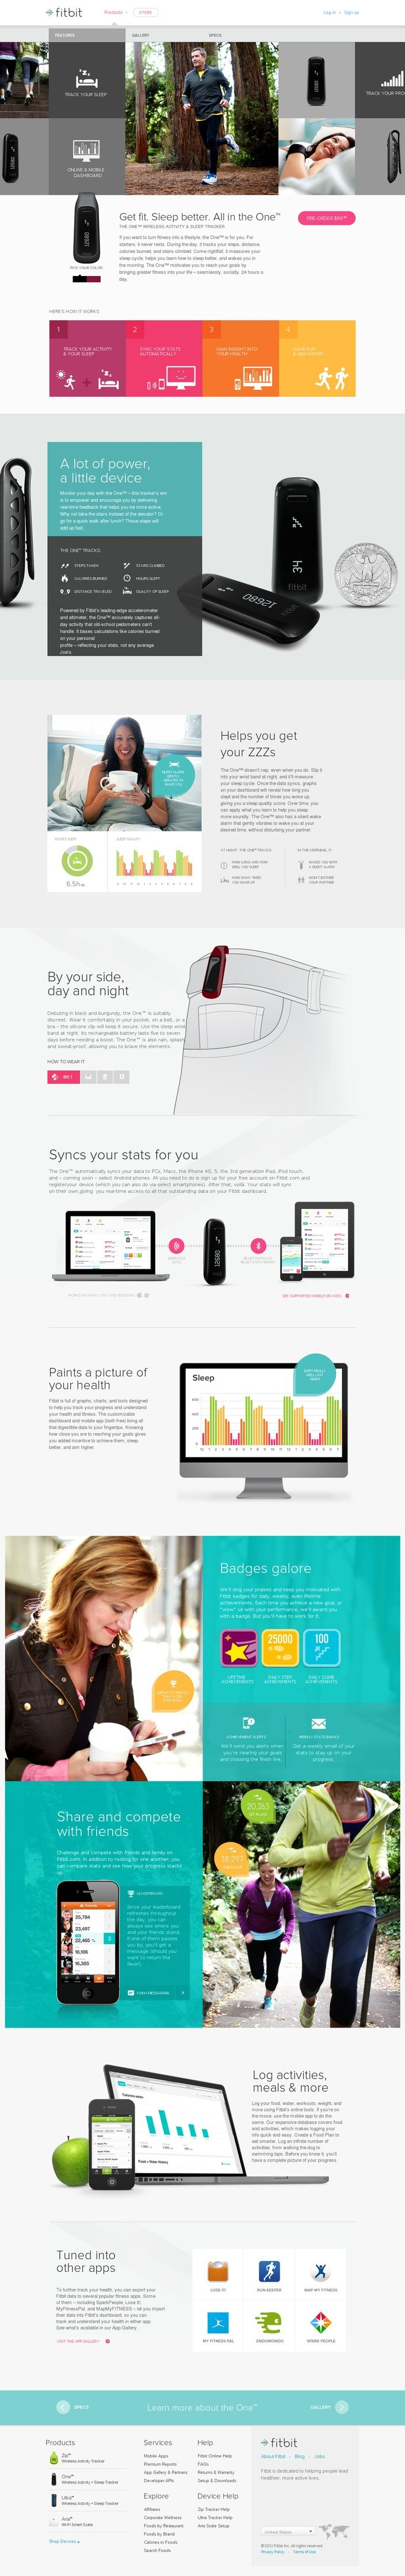 fitbit website #webdesign #exercise